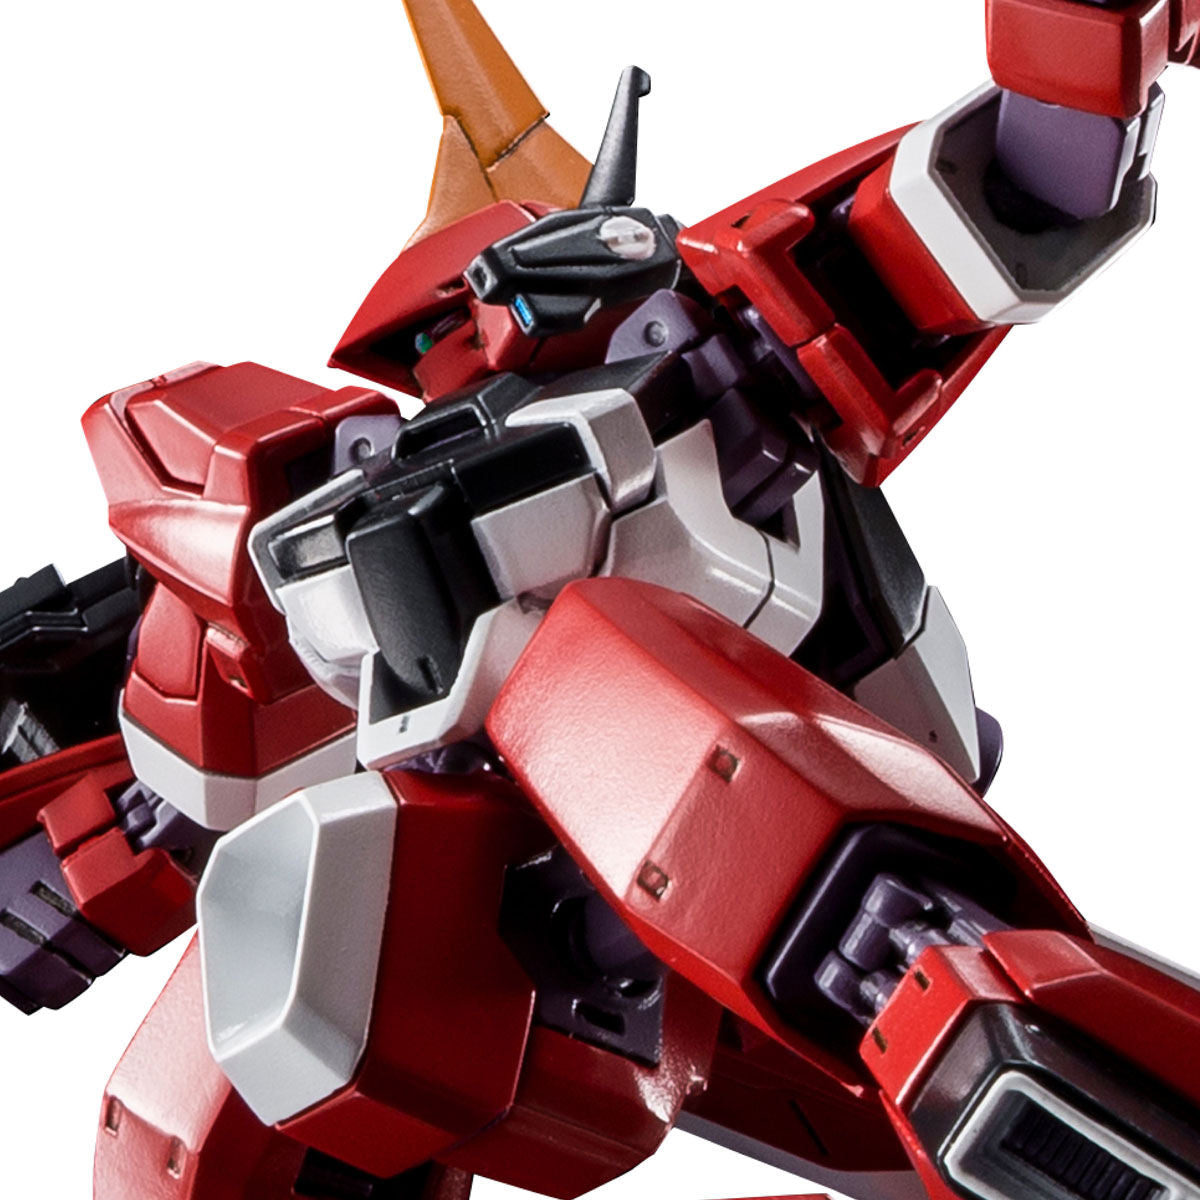 P-BANDAI: HGUC 1/144 BARZAM REGION CAPTURE SPECIFICATION UNIT AOZ RE-BOOT VERSION [END OF SEPTEMBER 2021]